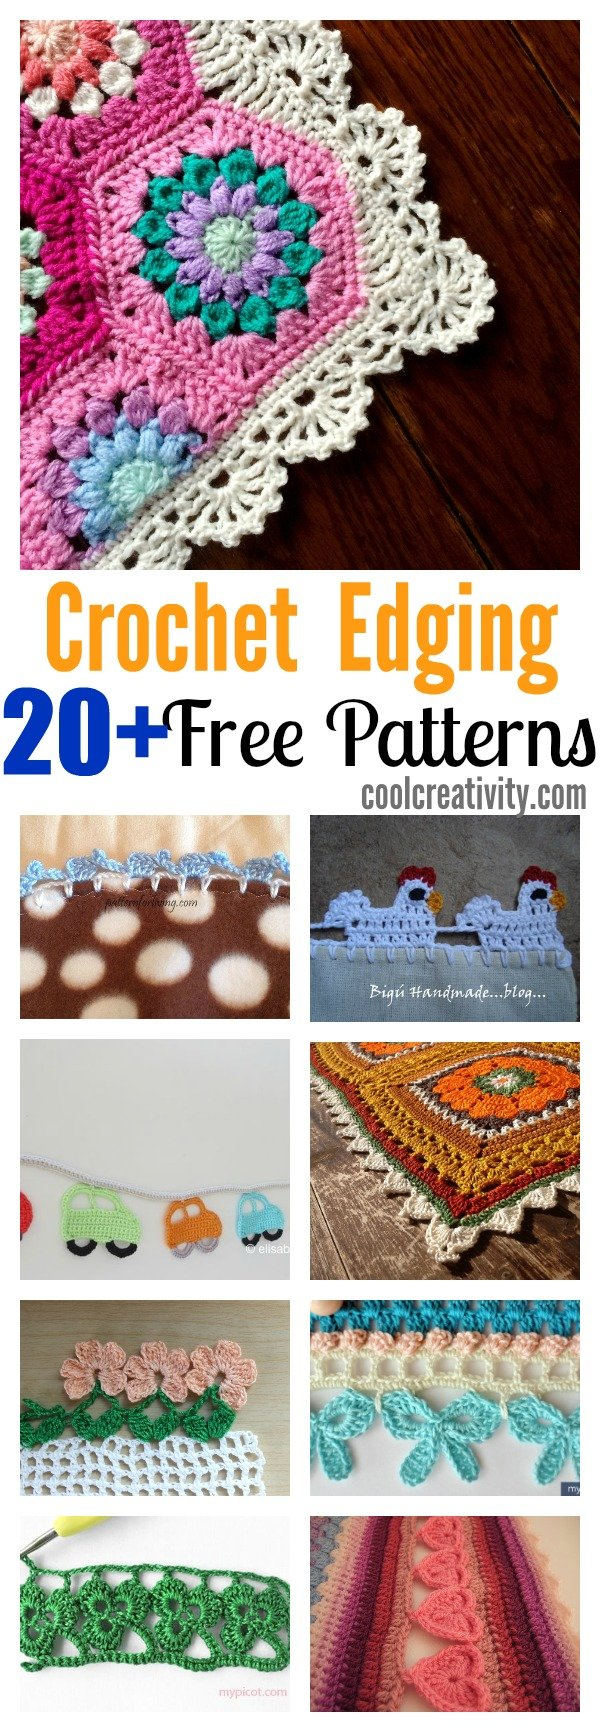 Crochet free edging patterns you should know 20 crochet free edging patterns you should know bankloansurffo Gallery